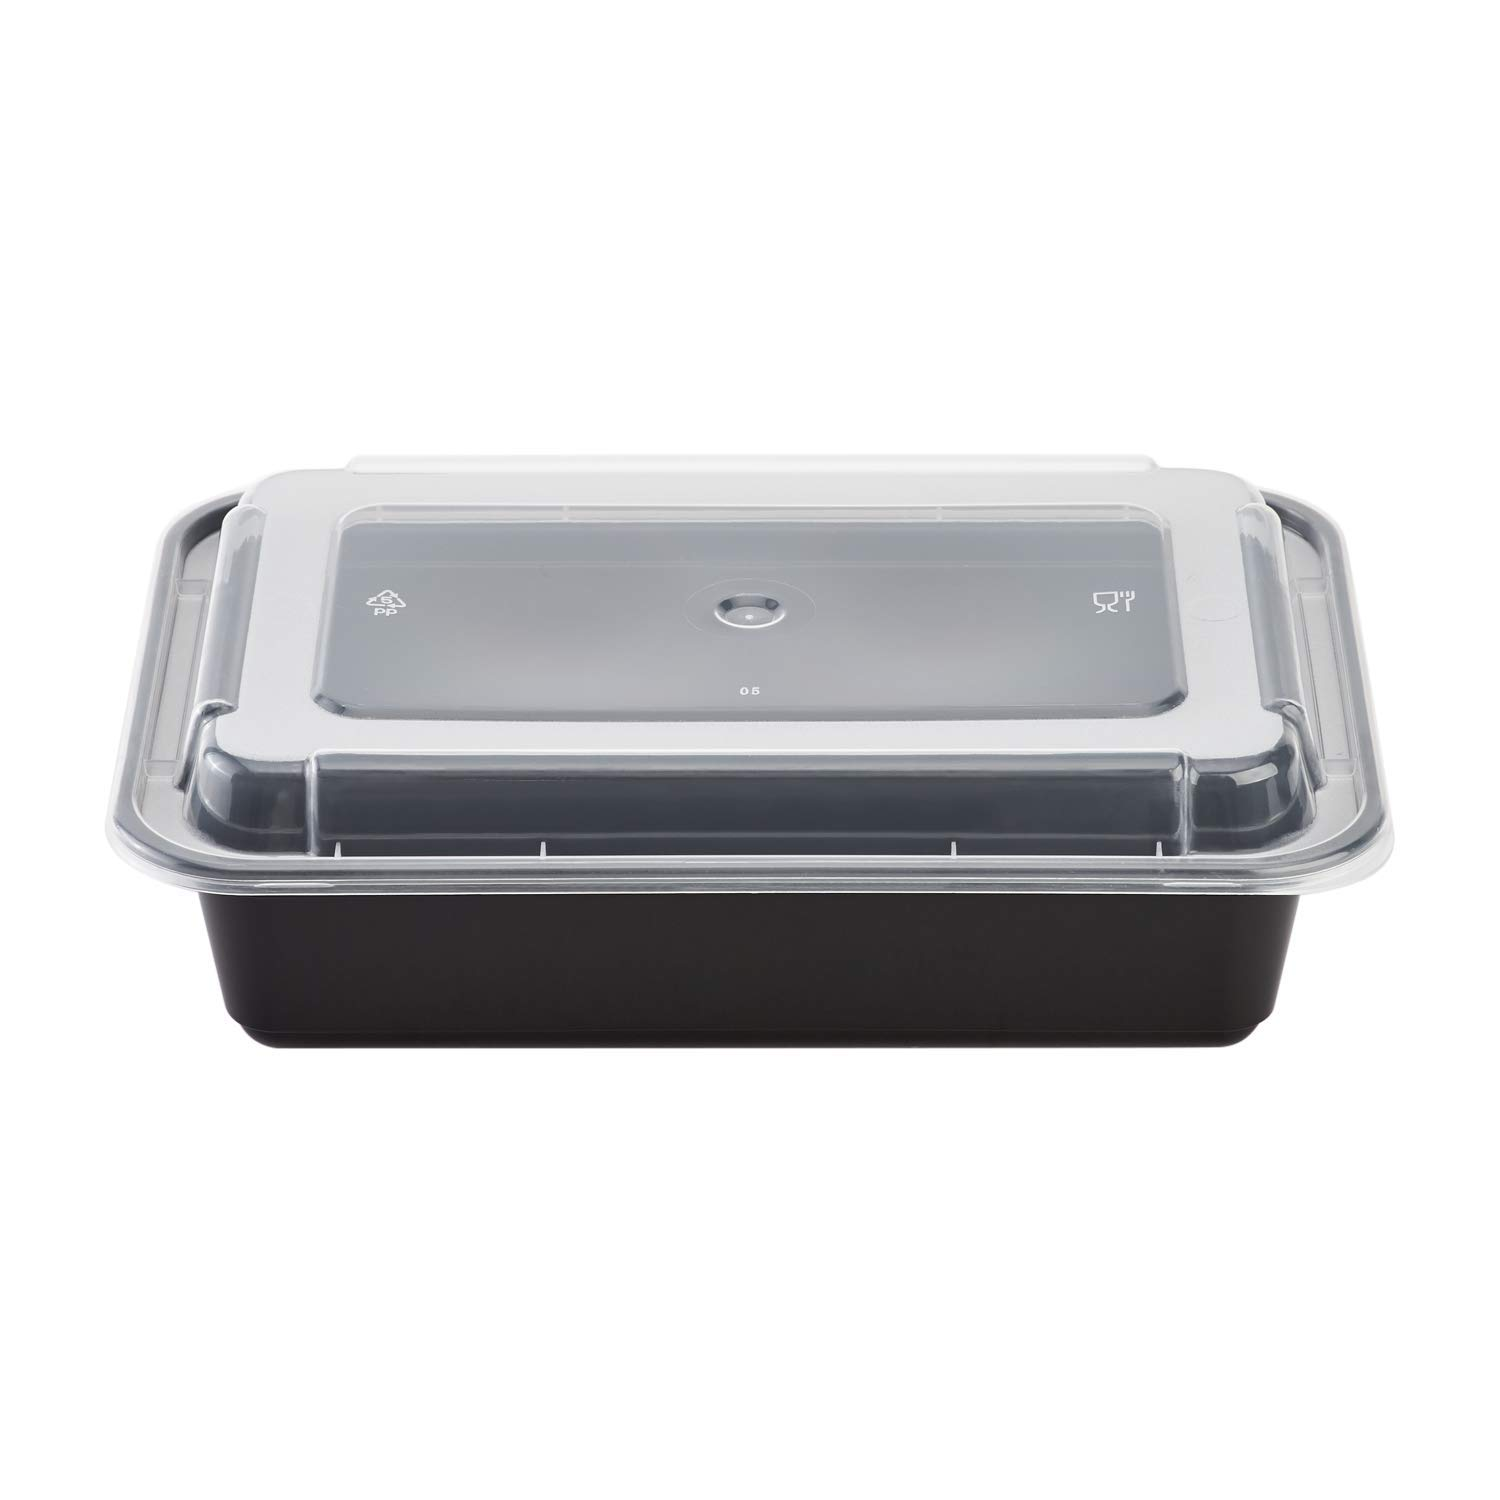 Karat IM-FC1038B 38 oz. PP Injection Molding Microwaveable Food Containers with Clear Lids, Rectangular - Black (Case of 150)